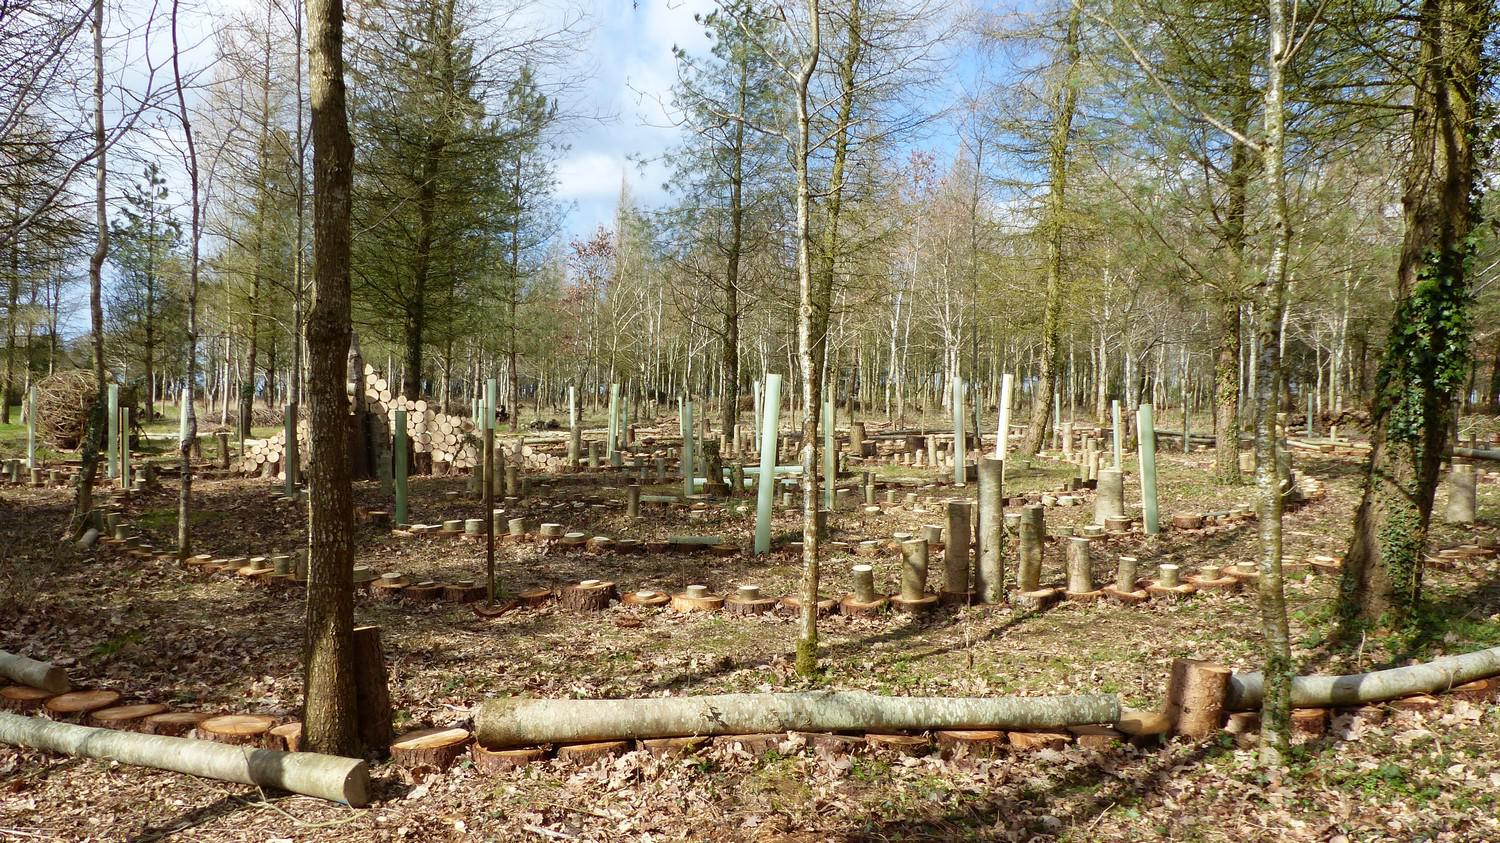 New trees planted into labyrinth walls